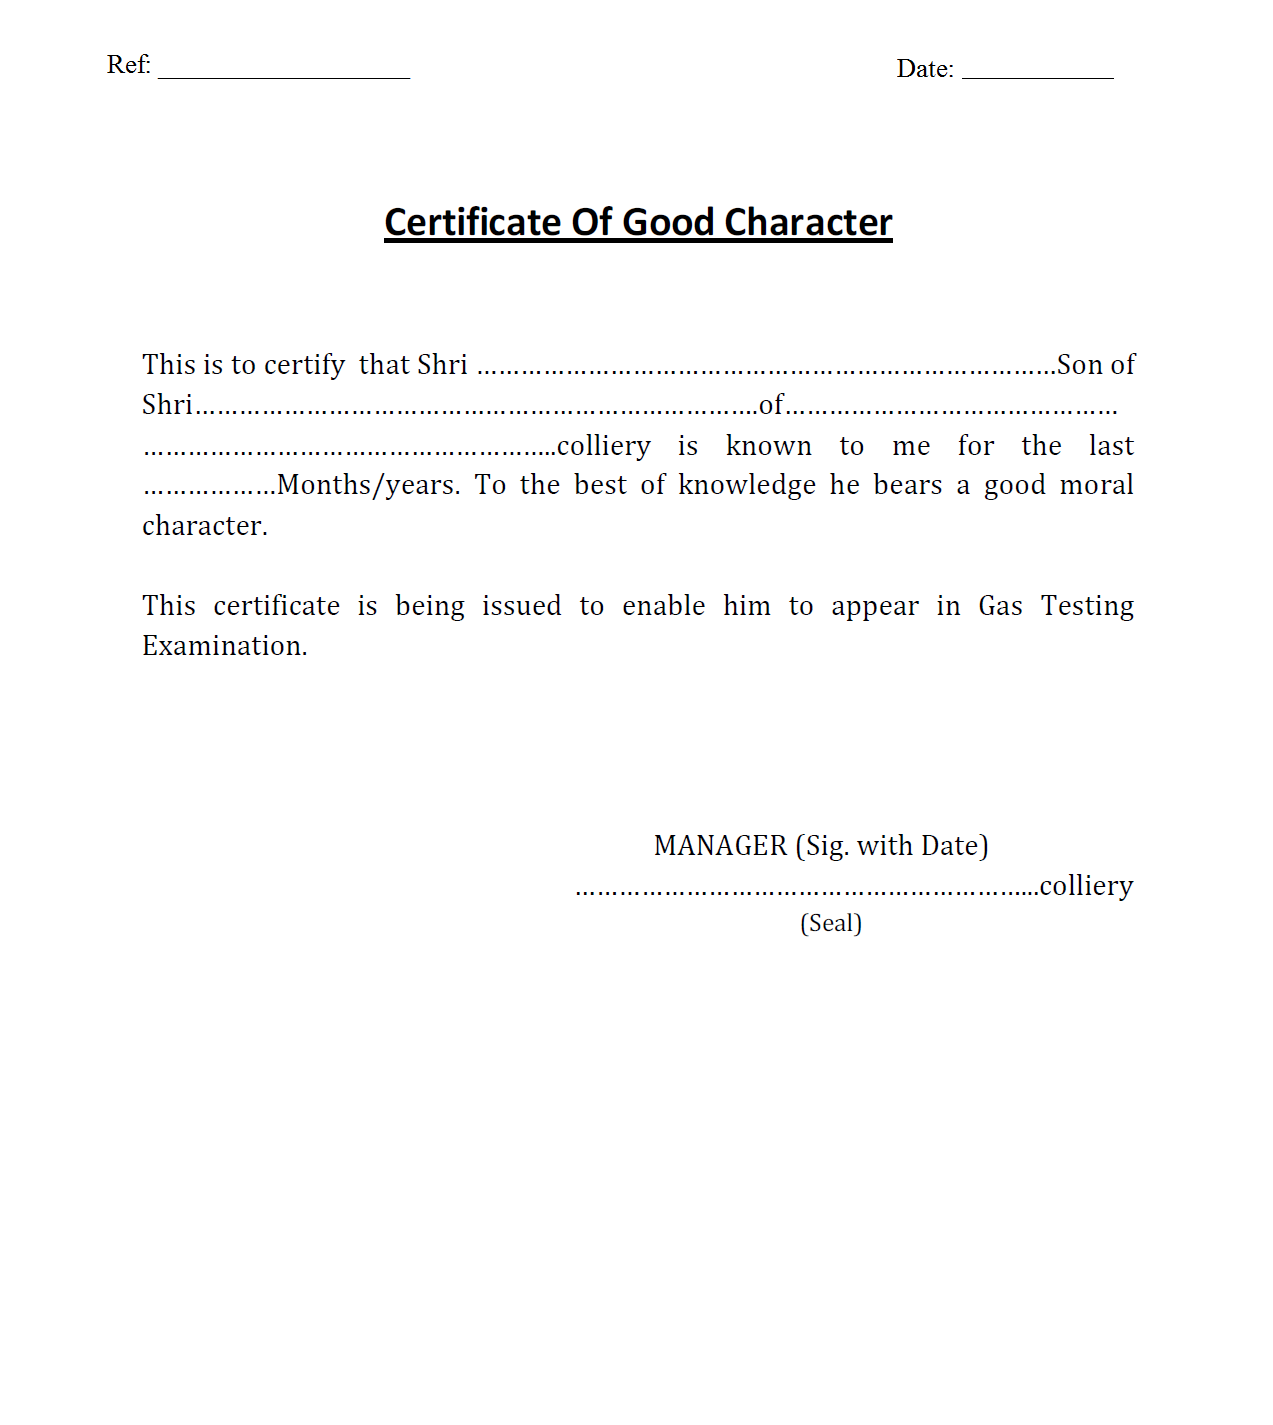 Cover letter for mining jobs sincerely katelyn johnson 11 resume cover letter for testing job character certificate for gas testing exam gujarat s mining engineer blog yadclub Images